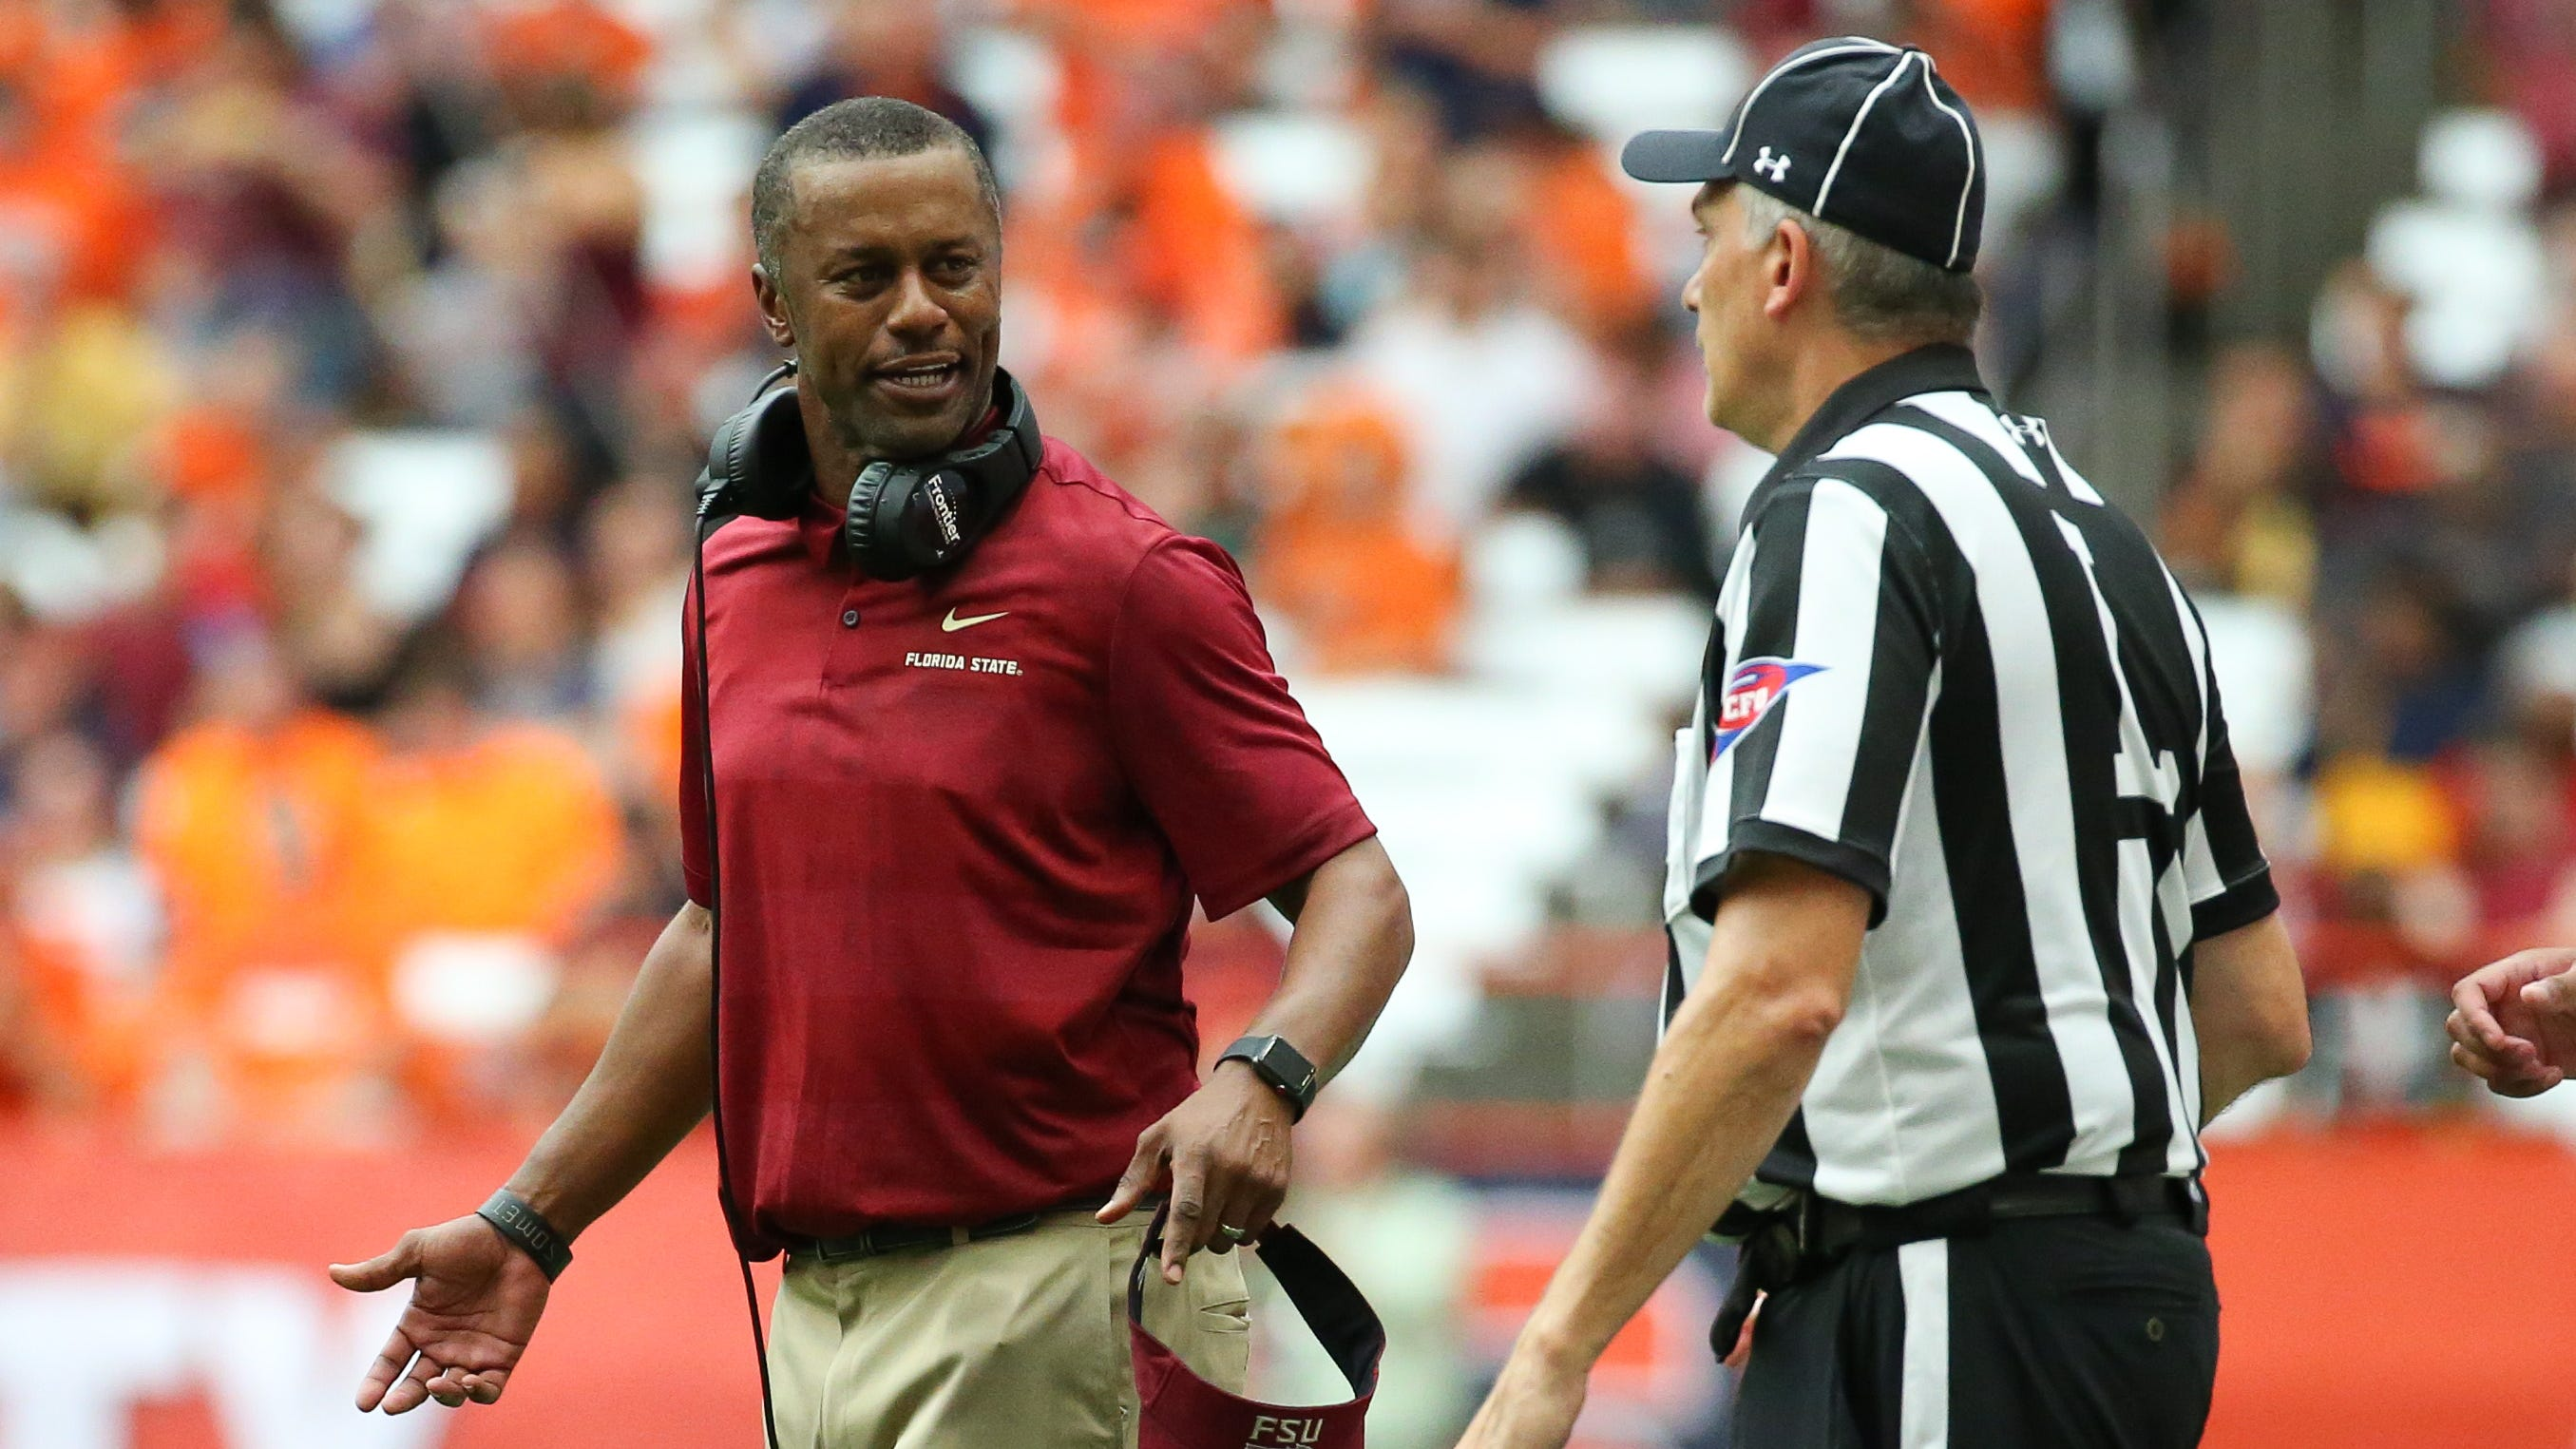 """Several GoFundMe accounts have been created to """"buy out"""" Florida State Coach Willie Taggart"""